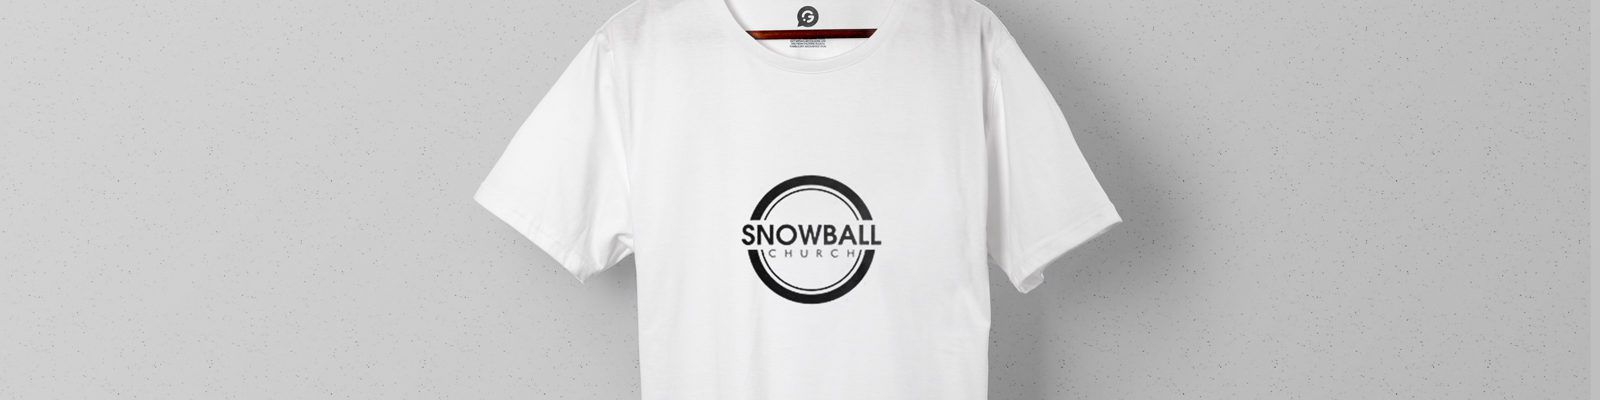 Snowball Church Get Noticed In Their Printed T-Shirts - Header Image